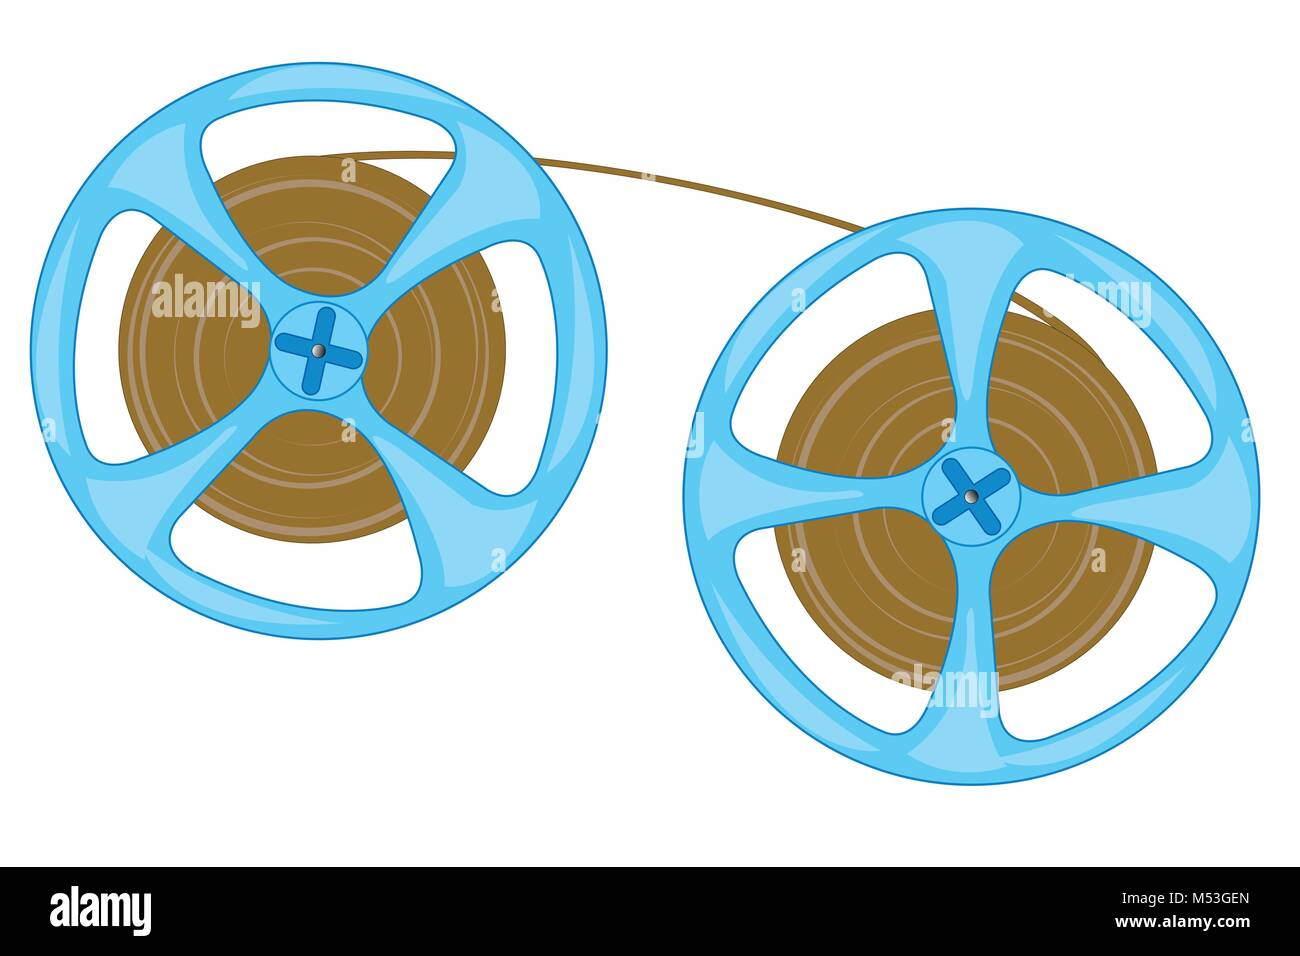 Spool with tape from player - Stock Vector